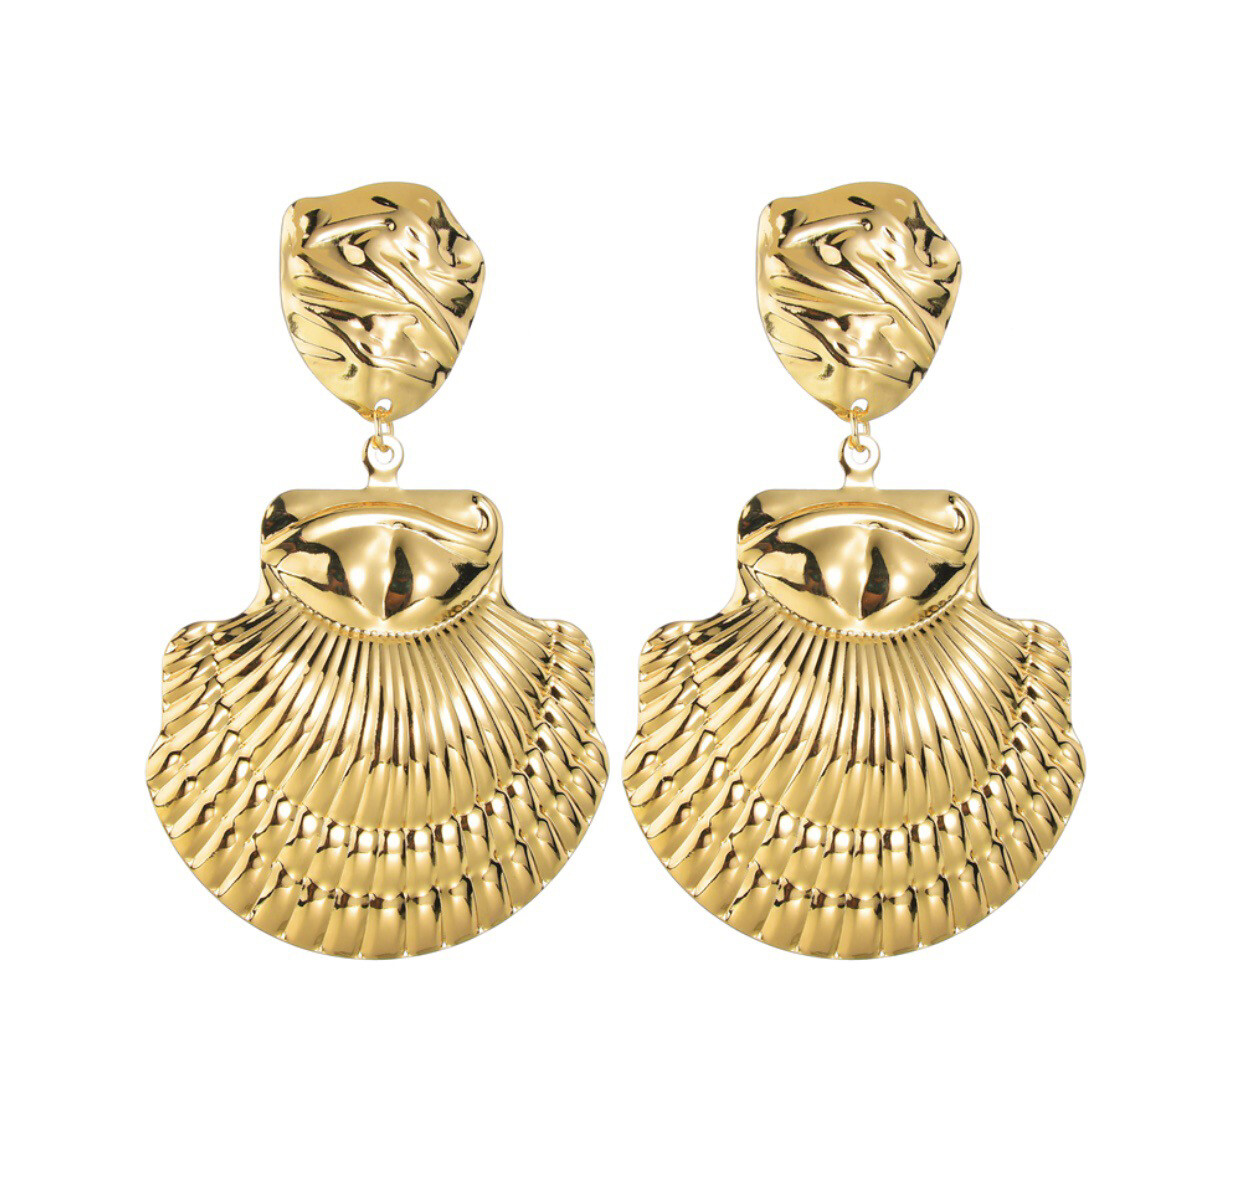 Frey earrings